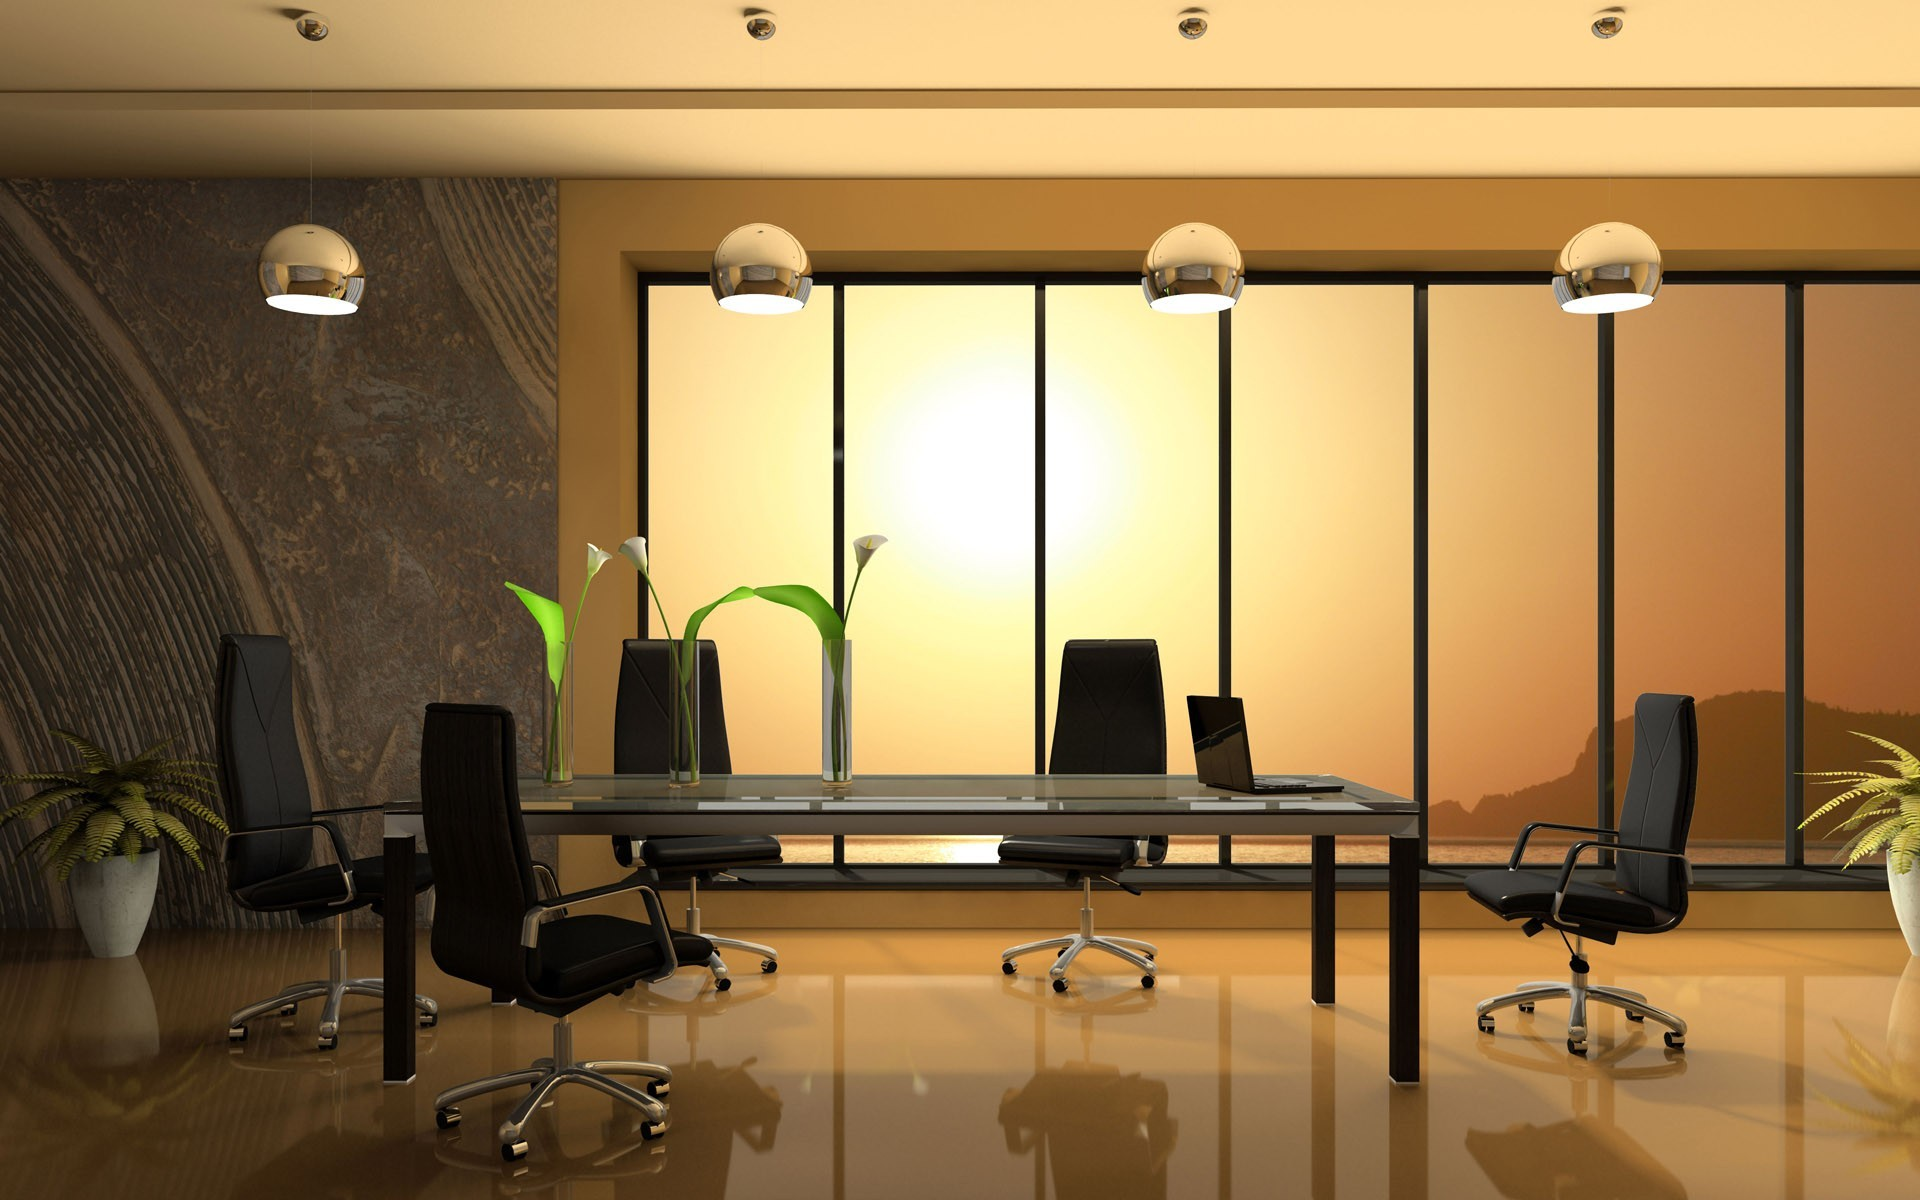 Office Interior Design Wallpaper 138 Pc En